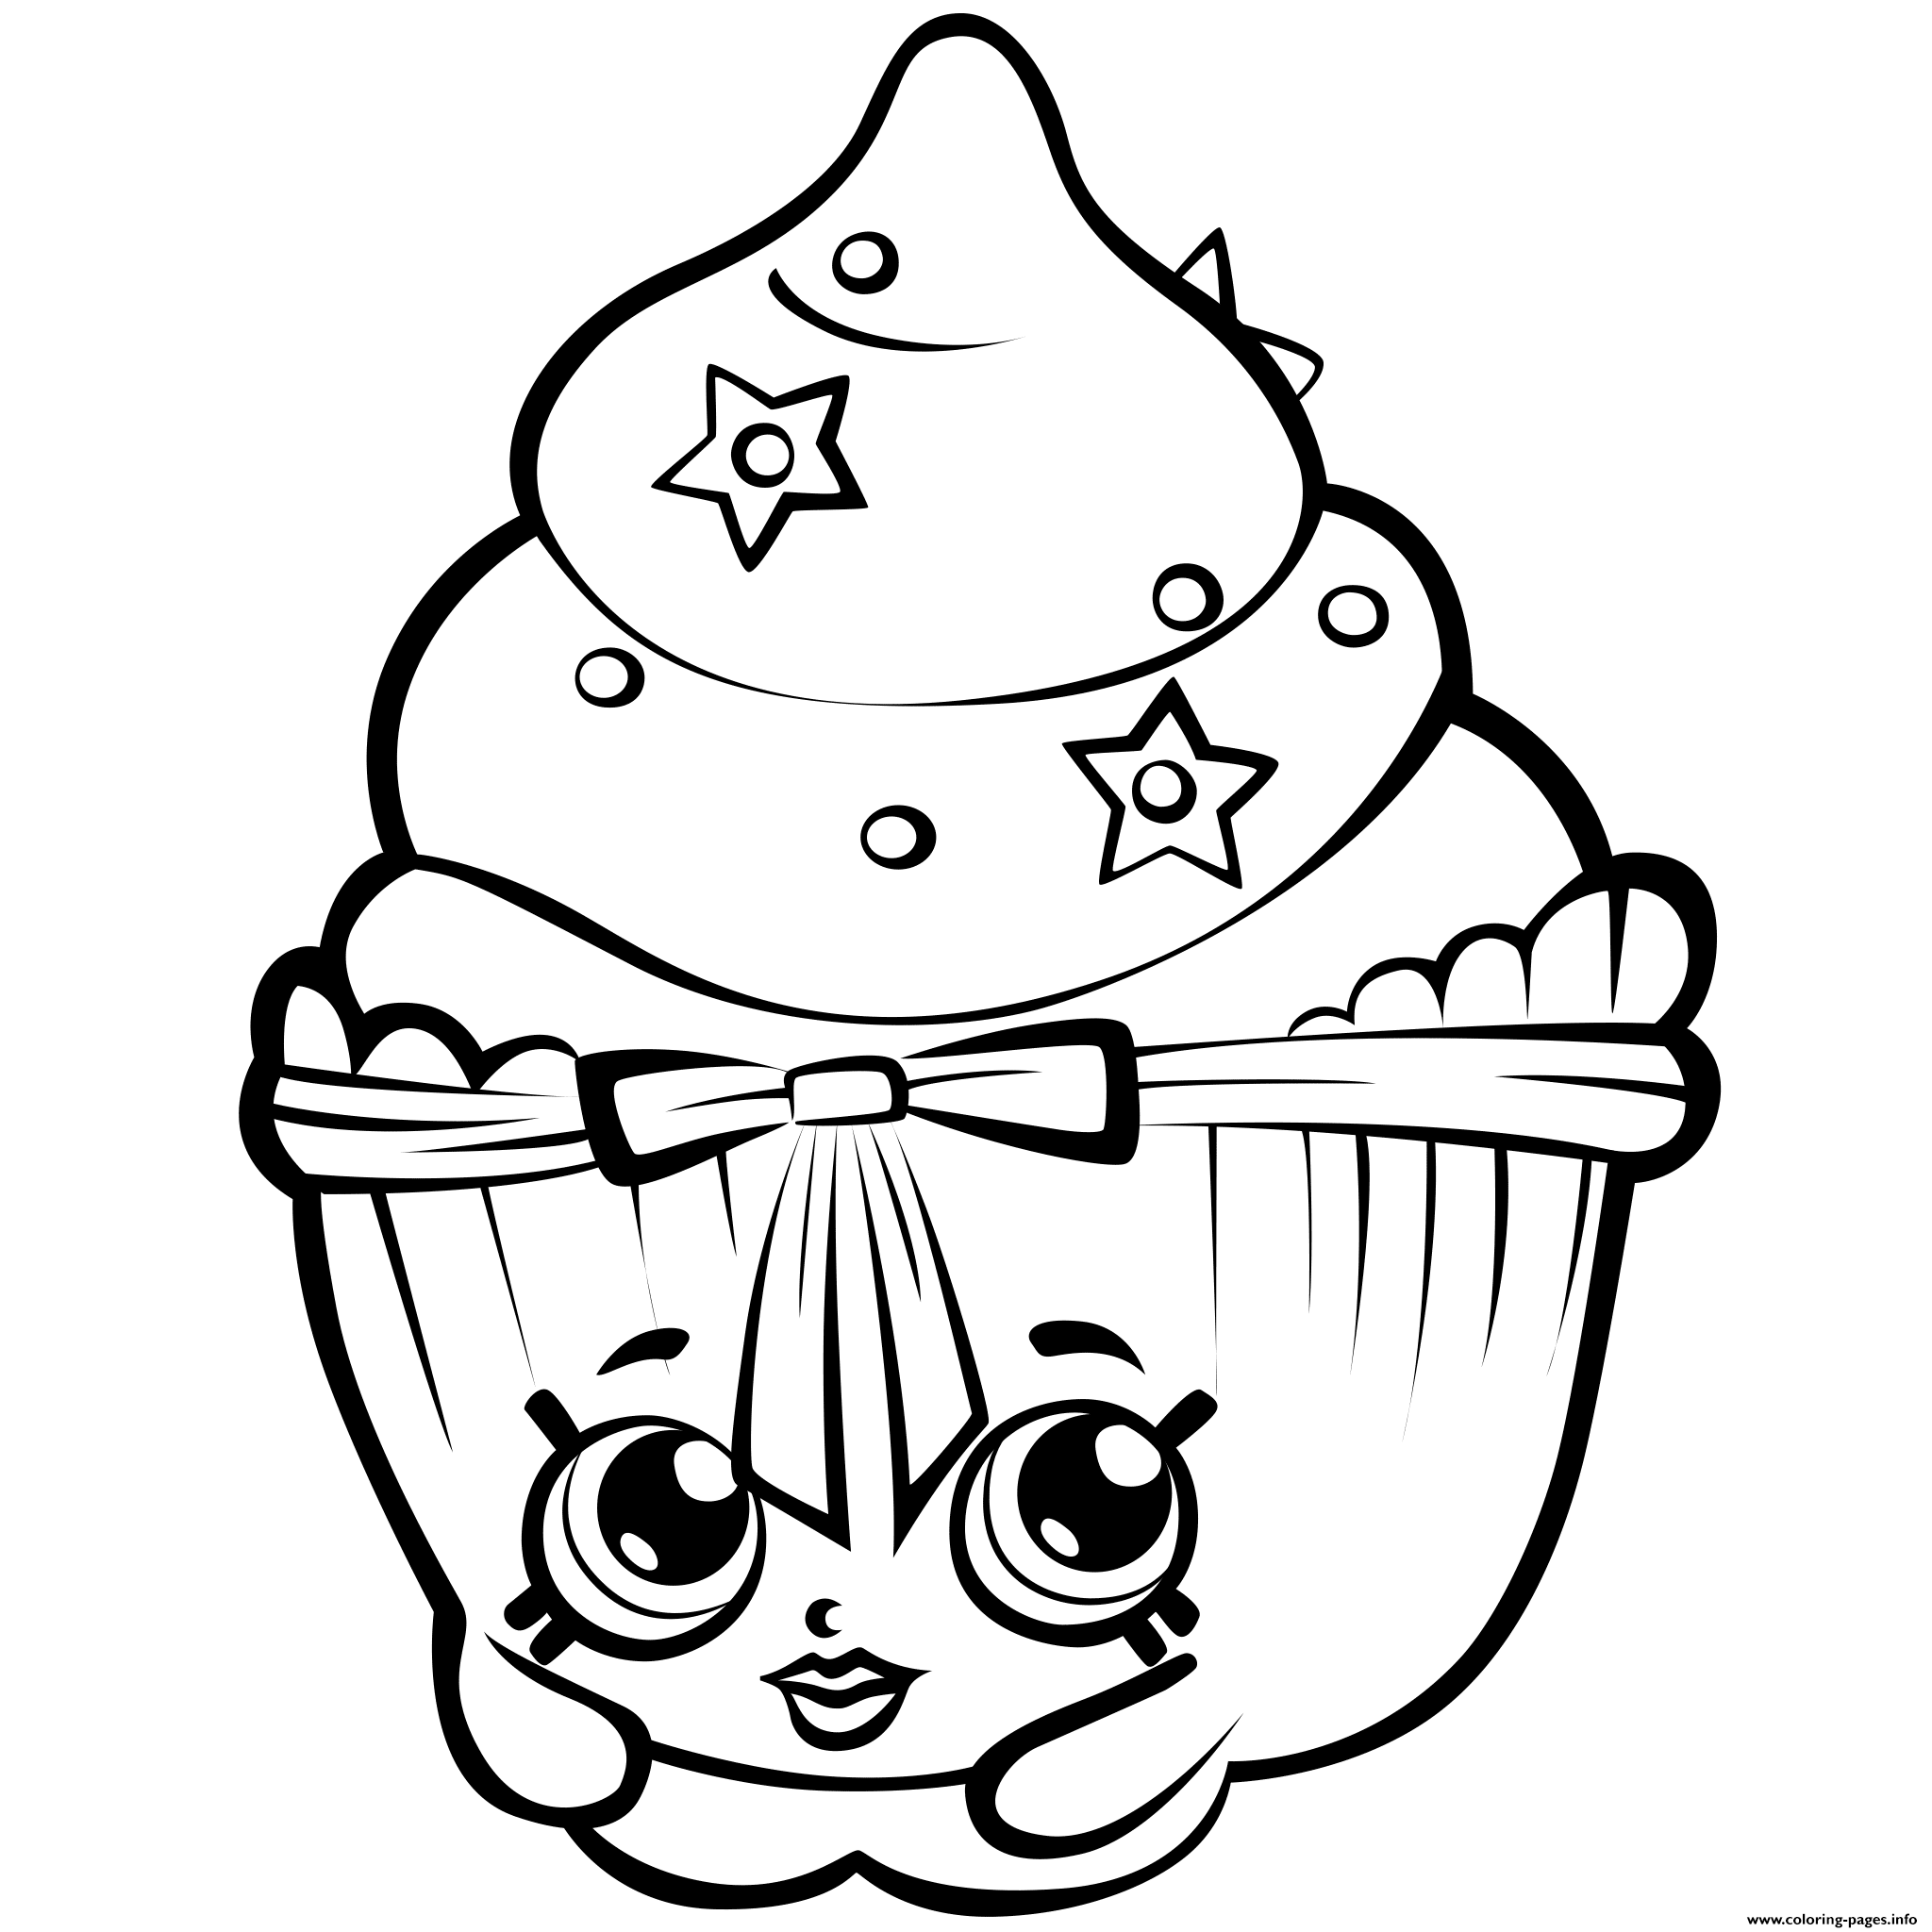 Print Season 3 Patty Cake shopkins season 3 coloring pages | Adult ...